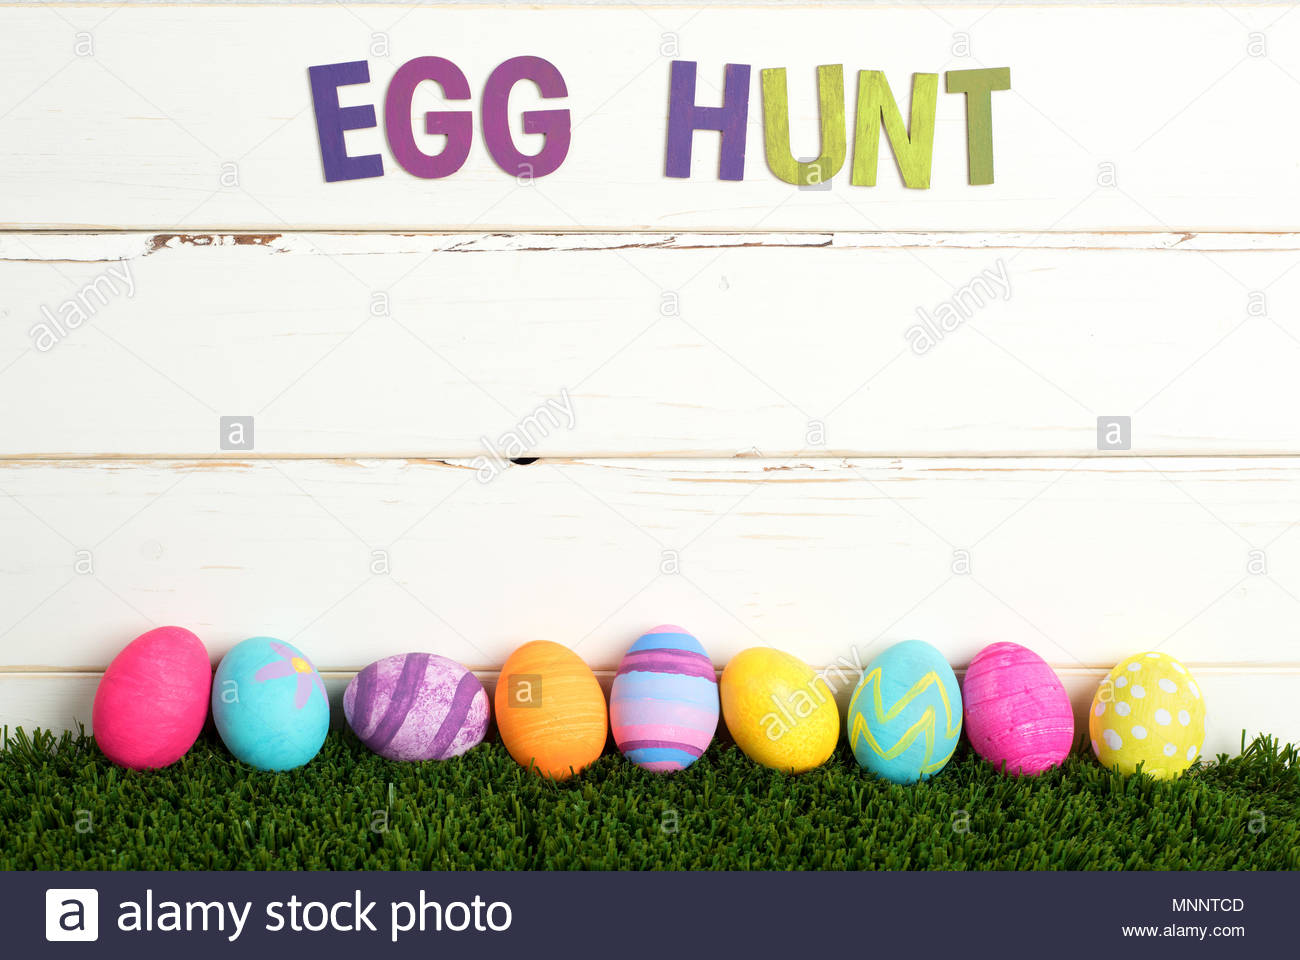 easter egg hunt invite with colorful dyed eggs in a line on grass and agasint white shiplap board background with room or space for your words copy